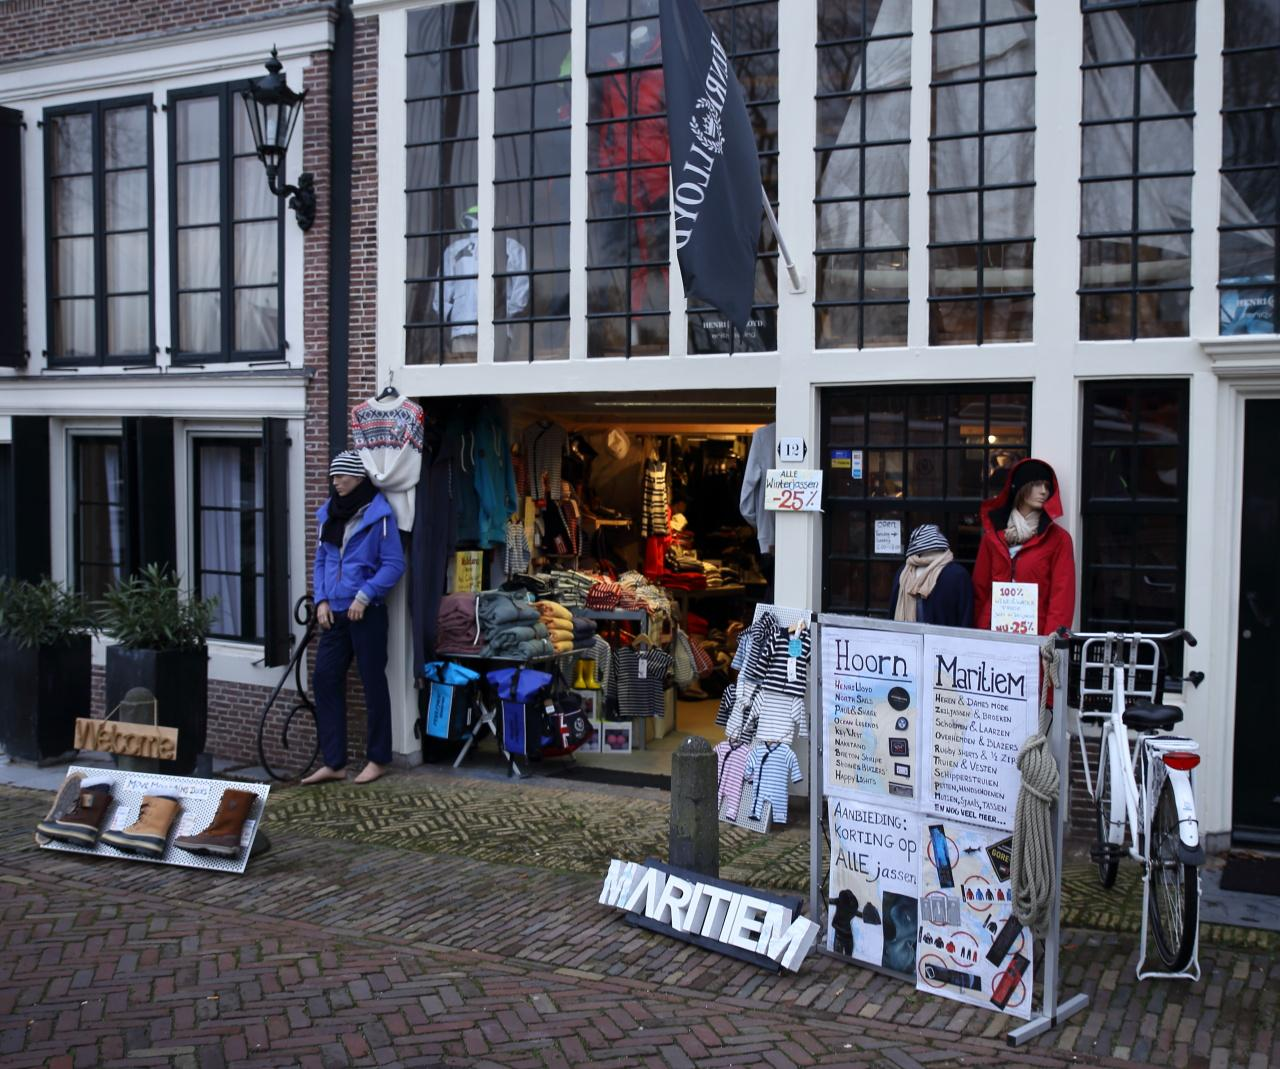 Photo Hoorn Maritiem en Hoorn, Shopping, Mode et habillement - #2